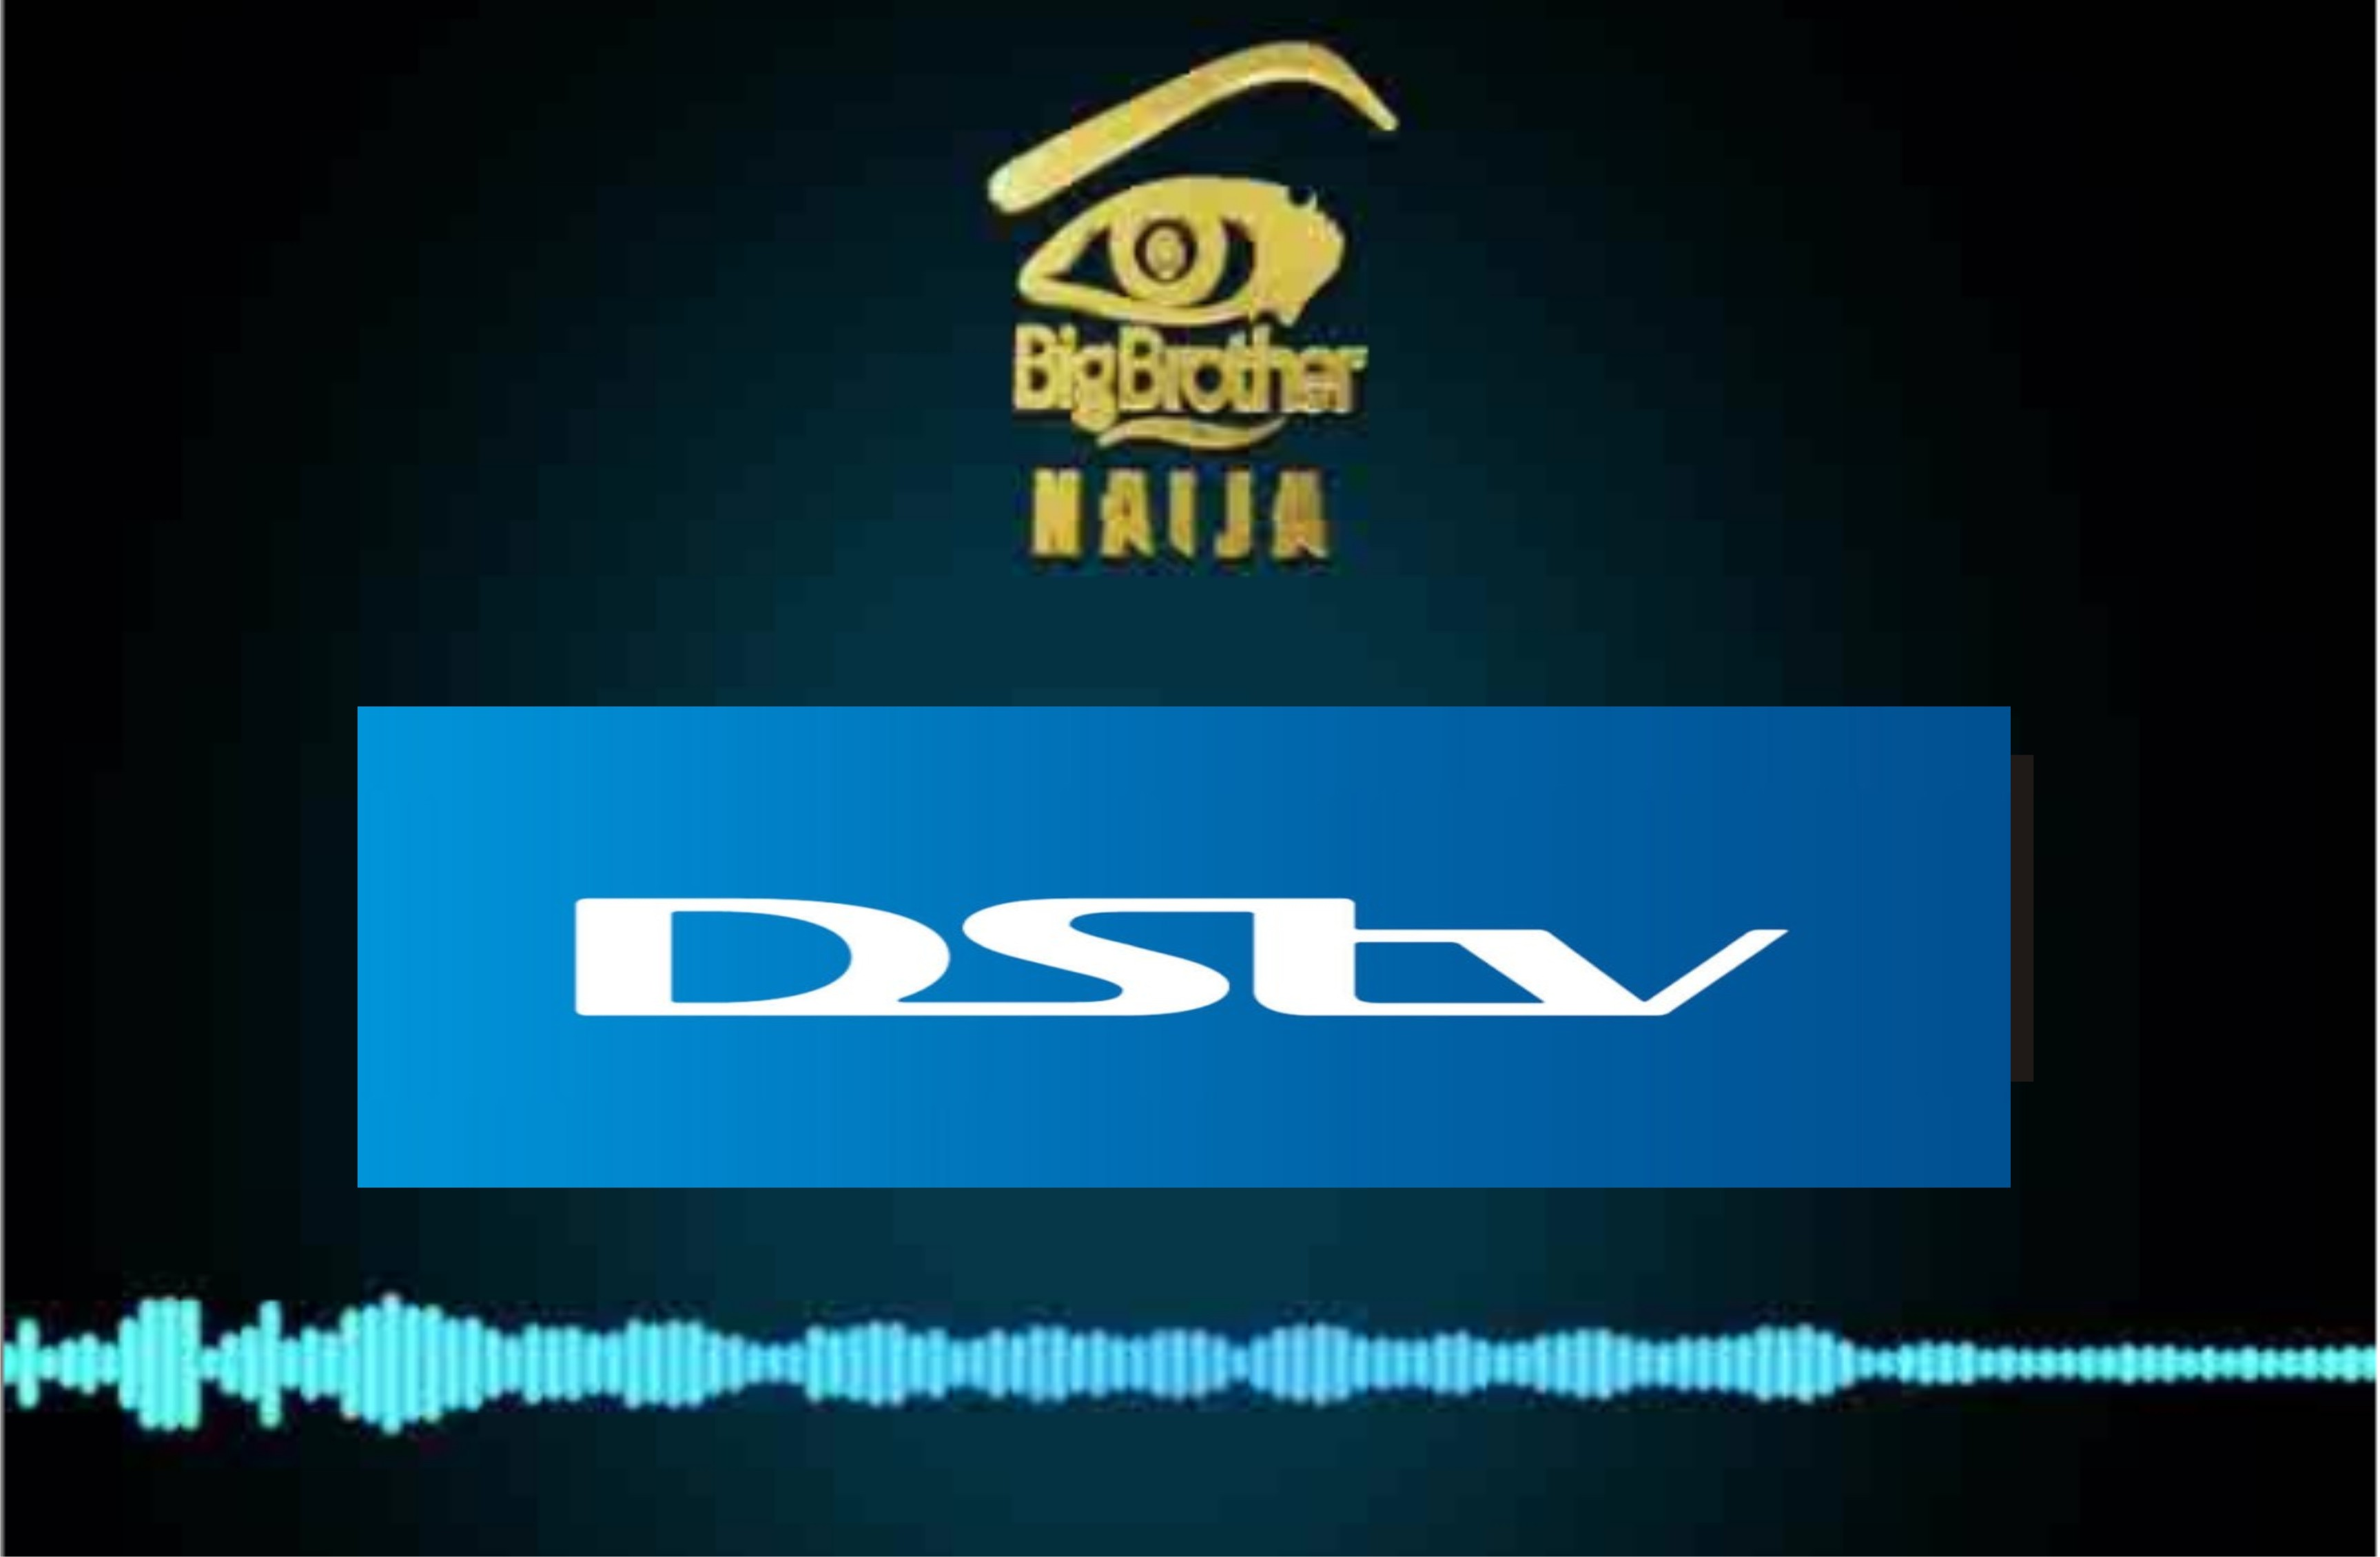 How to Download DStv Now App for BBNaija 2019 on iOS and Android